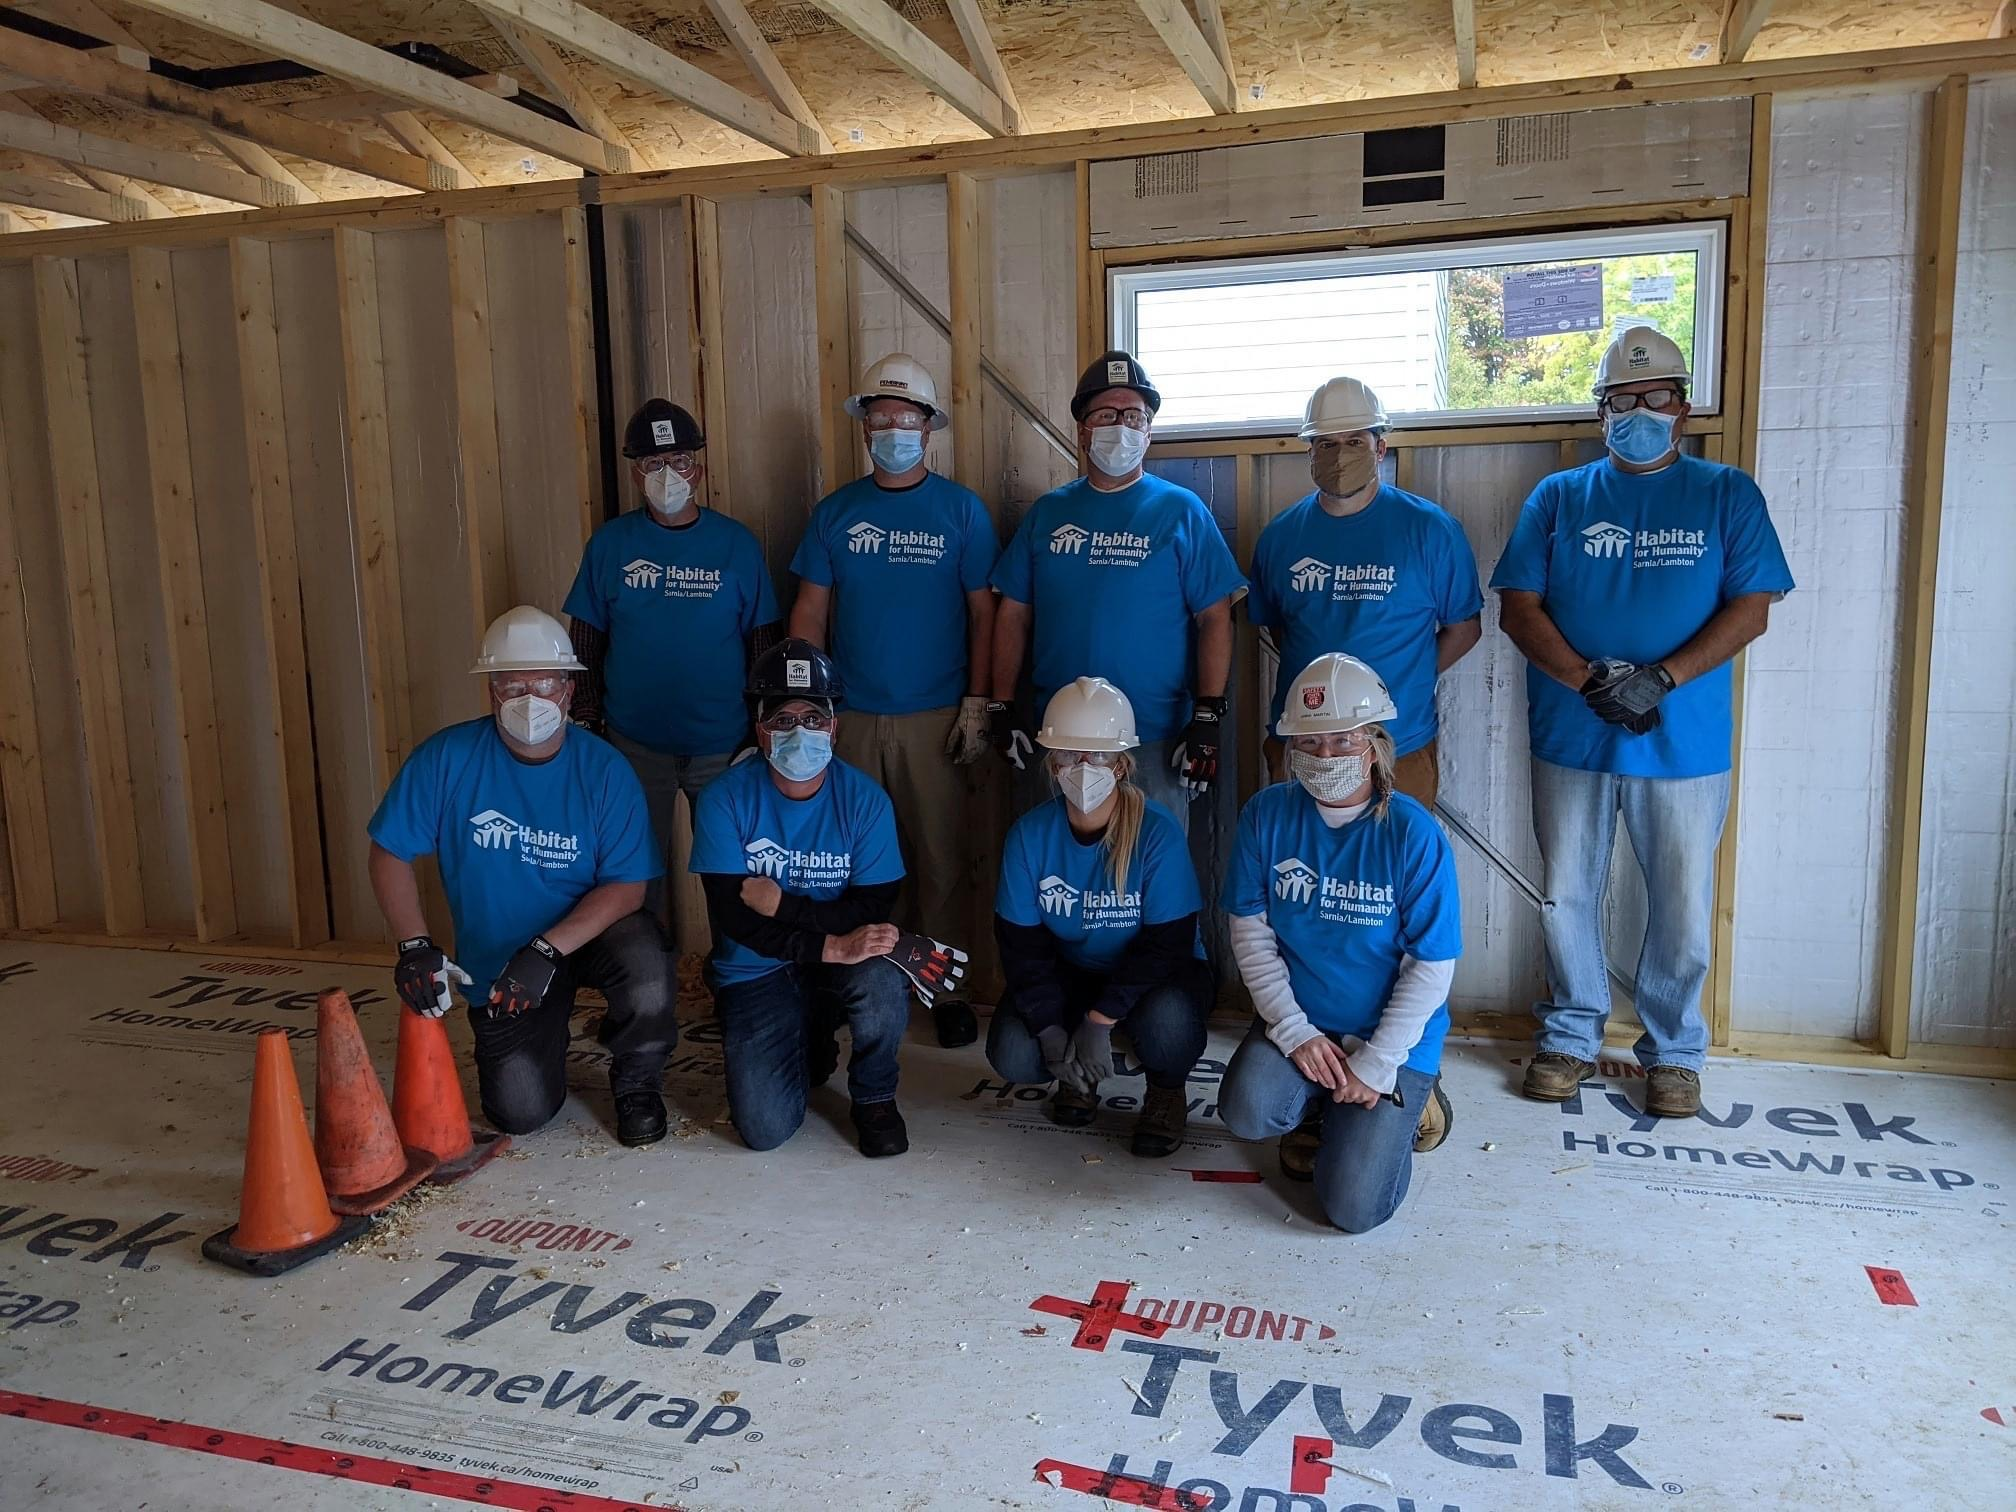 Team in Corunna, ON volunteering at a Habitat for Humanity build